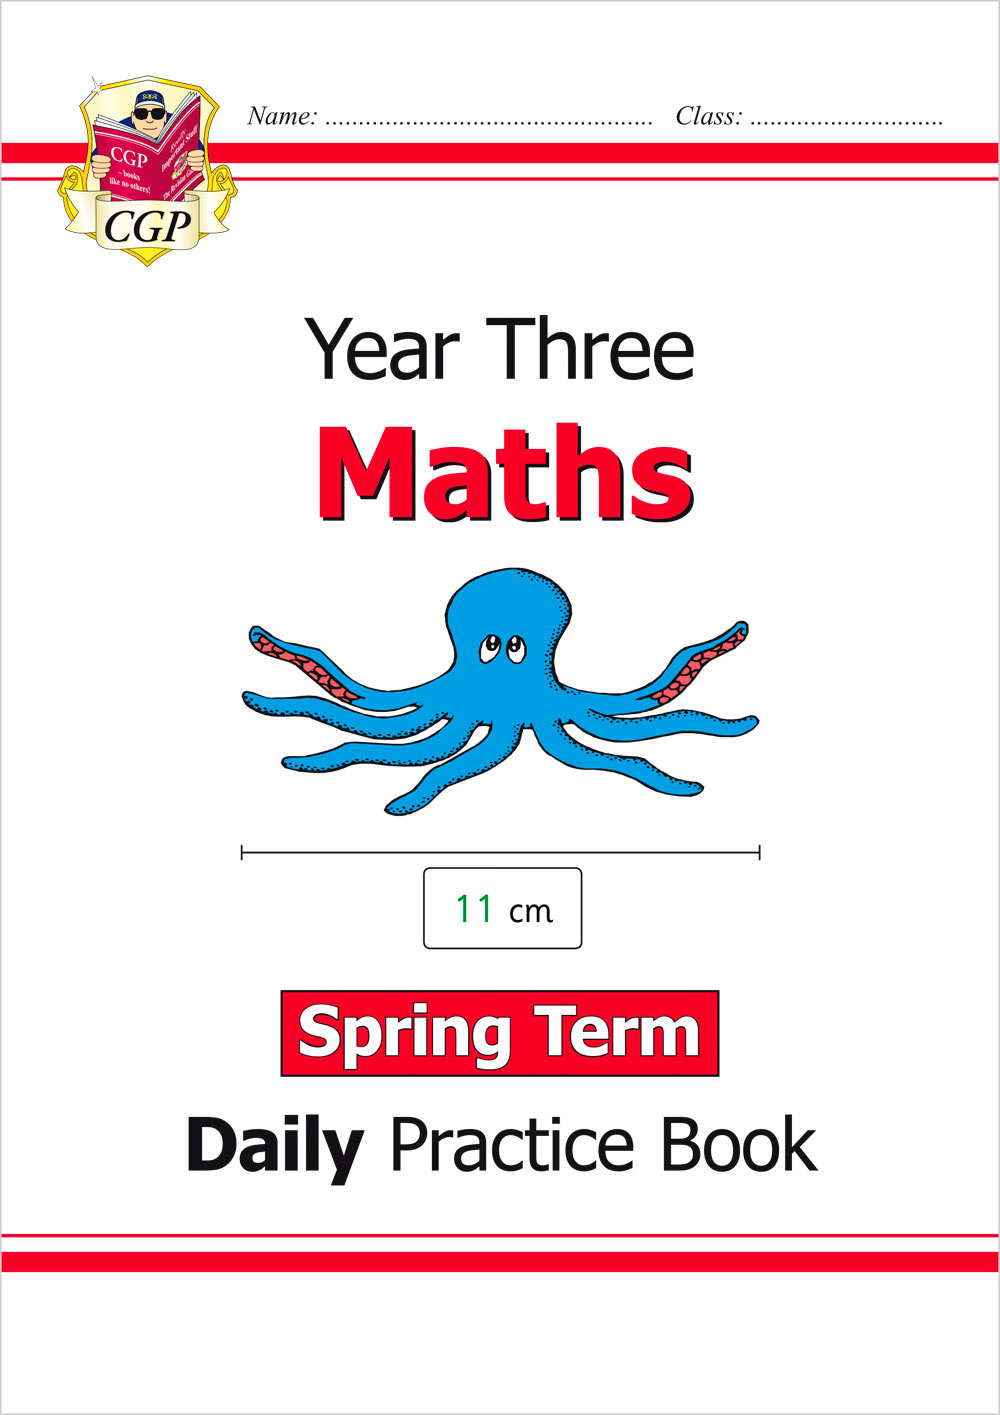 M3WSP21 - New KS2 Maths Daily Practice Book: Year 3 - Spring Term